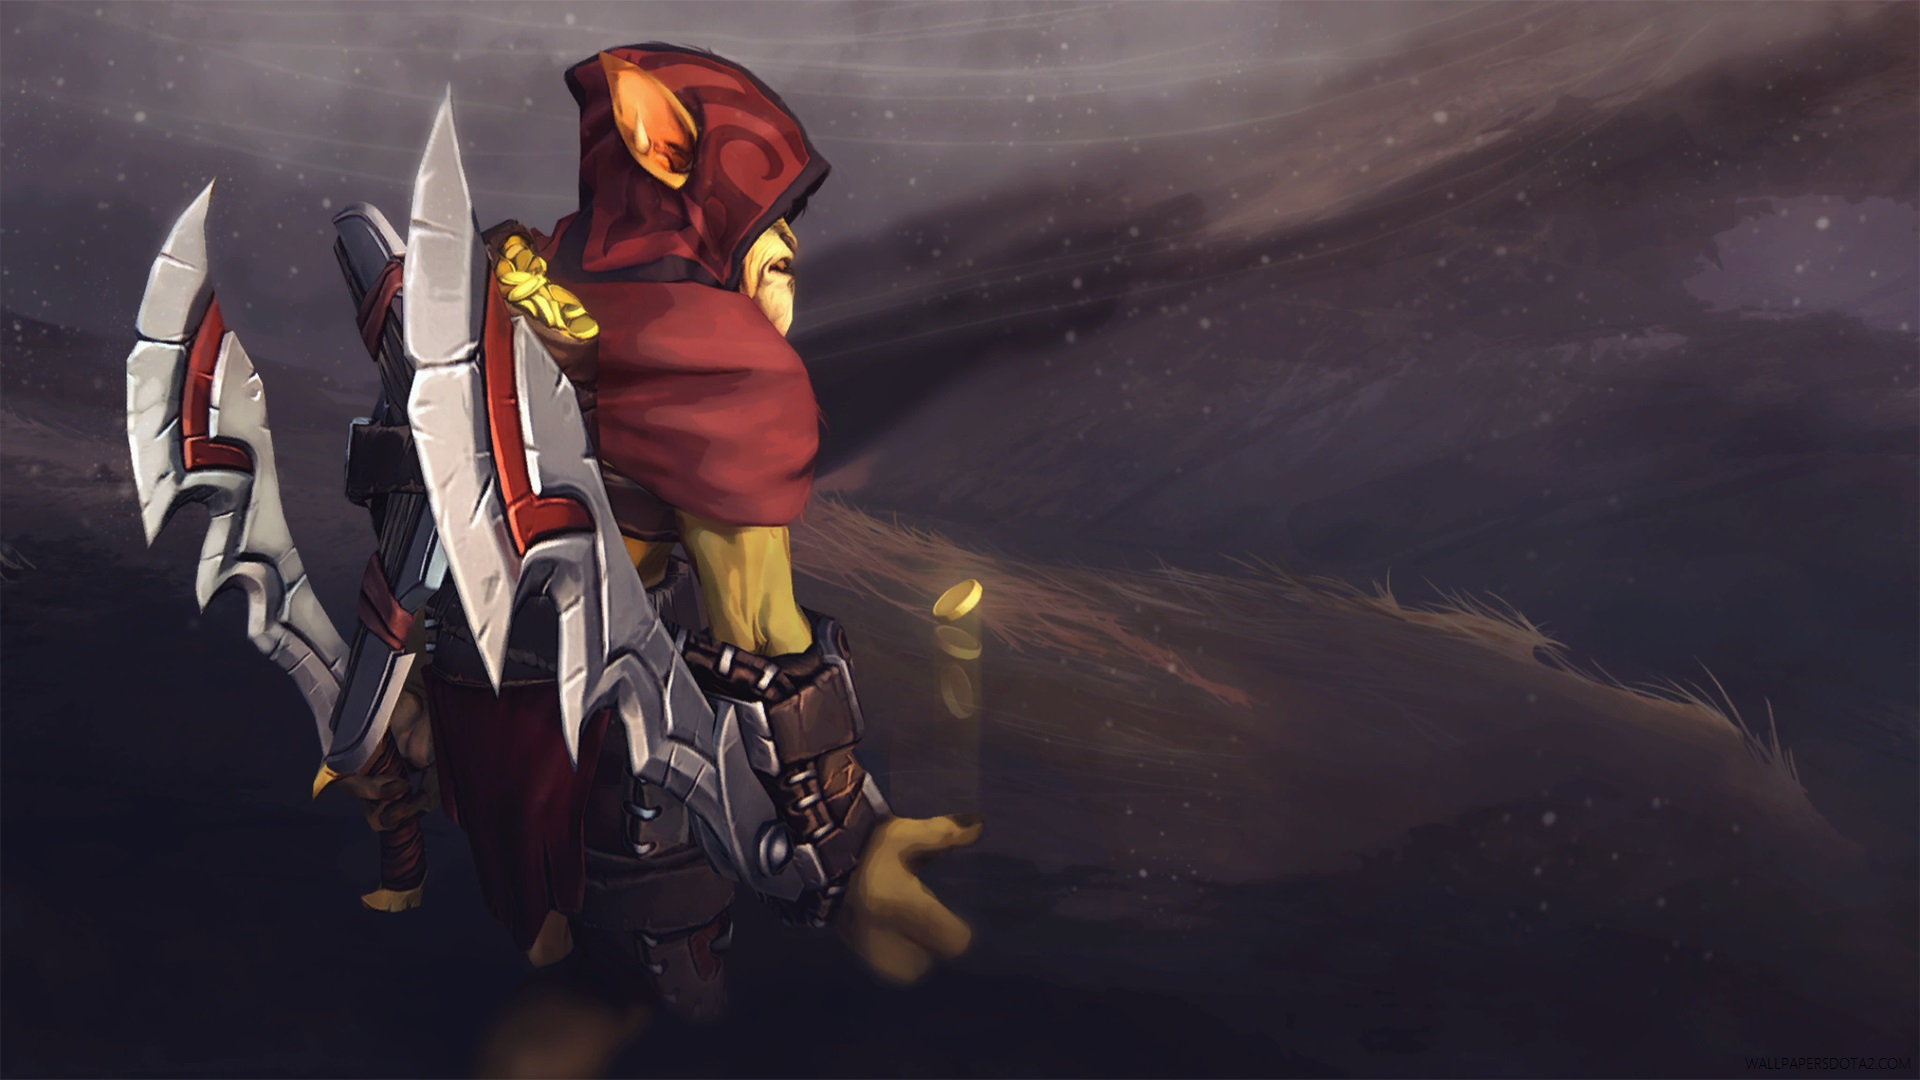 Bounty Hunter Twin Blades Assassin Dota 2